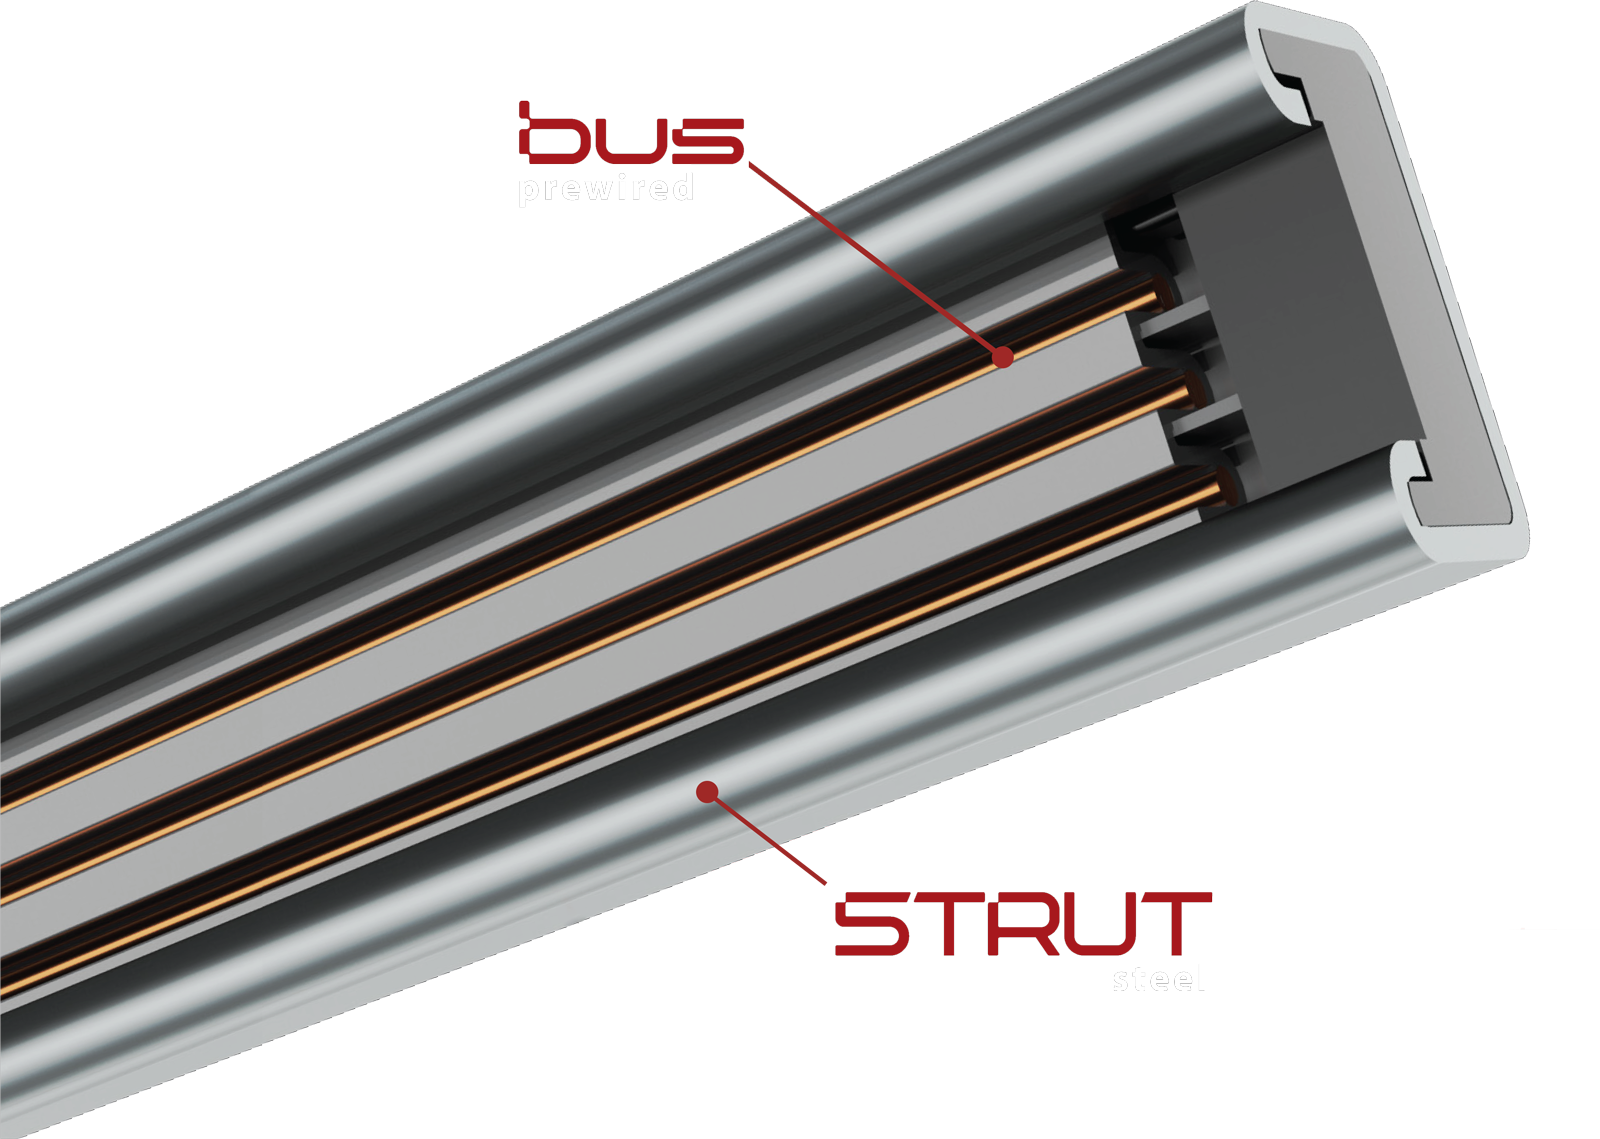 BusSTRUT - One System that bridges the gap between architectural and electro-mechanical systems.